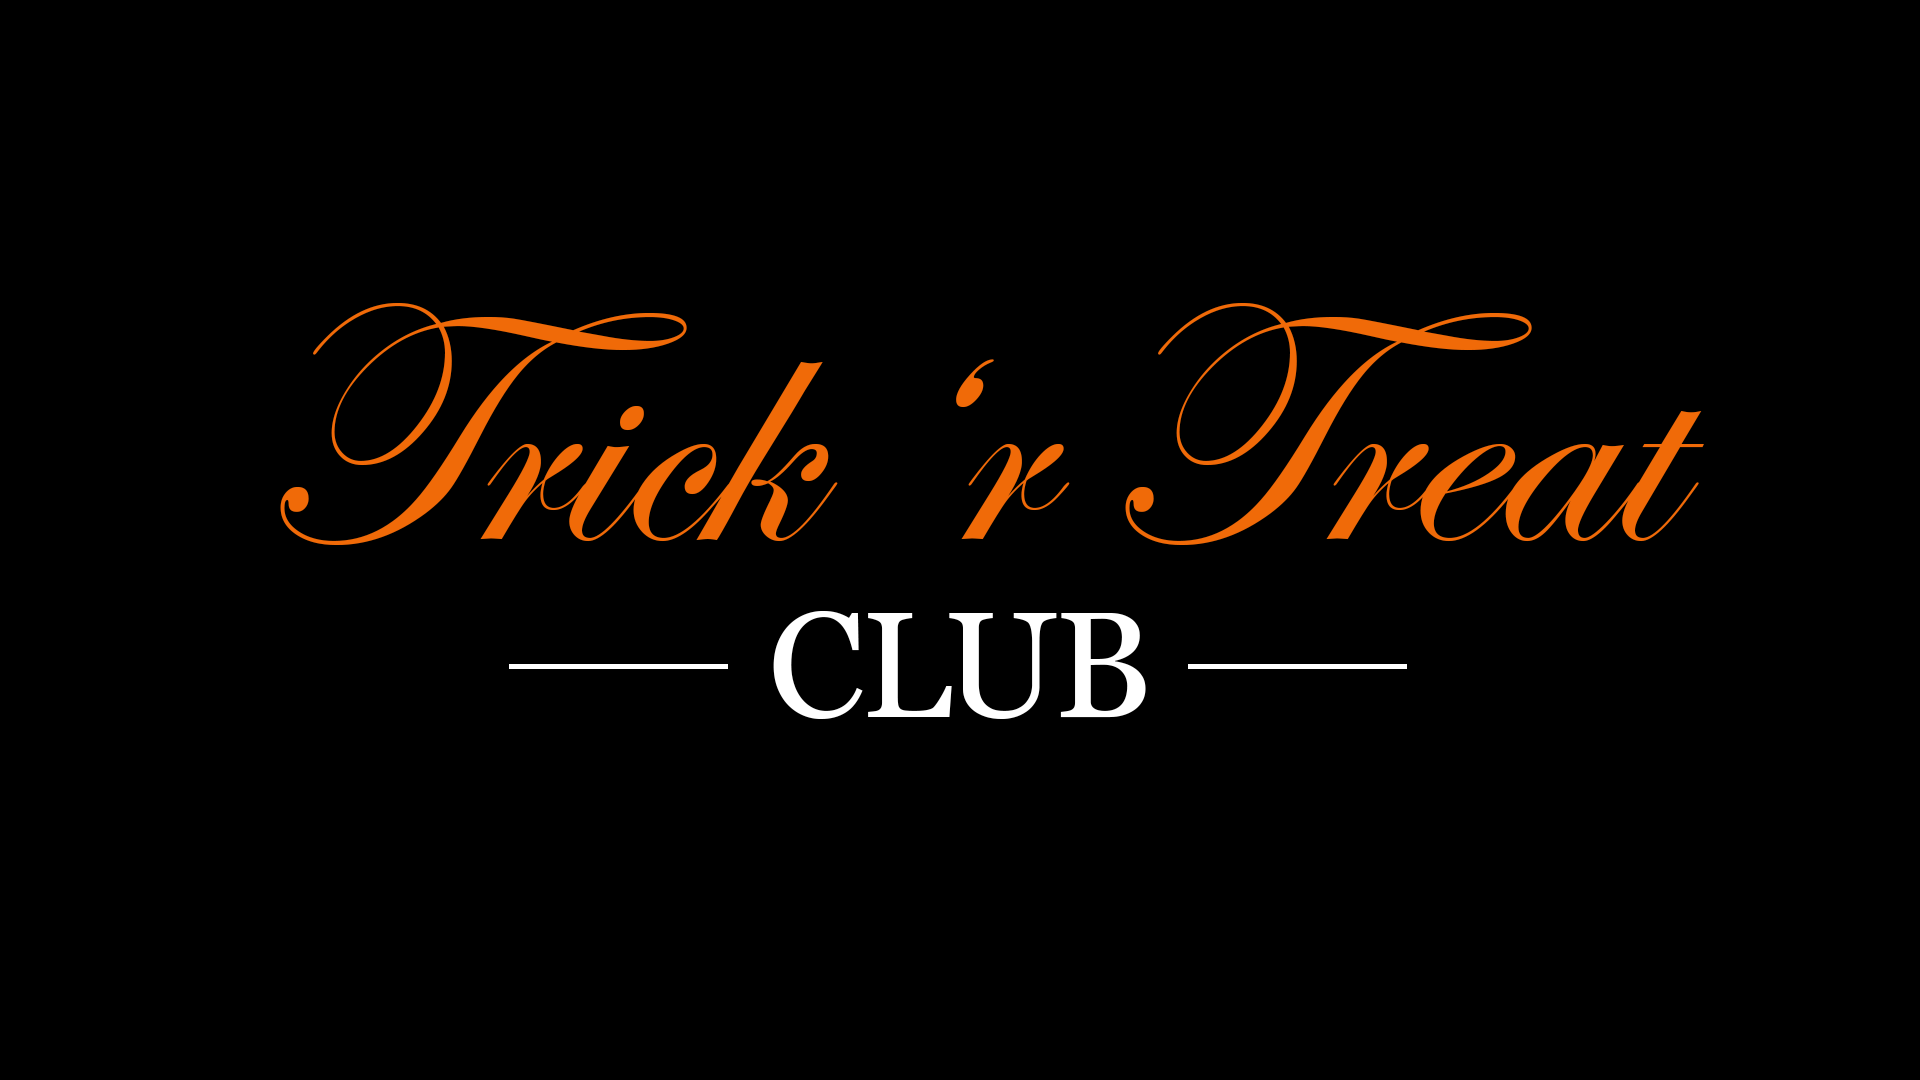 Trick 'r Treat Club